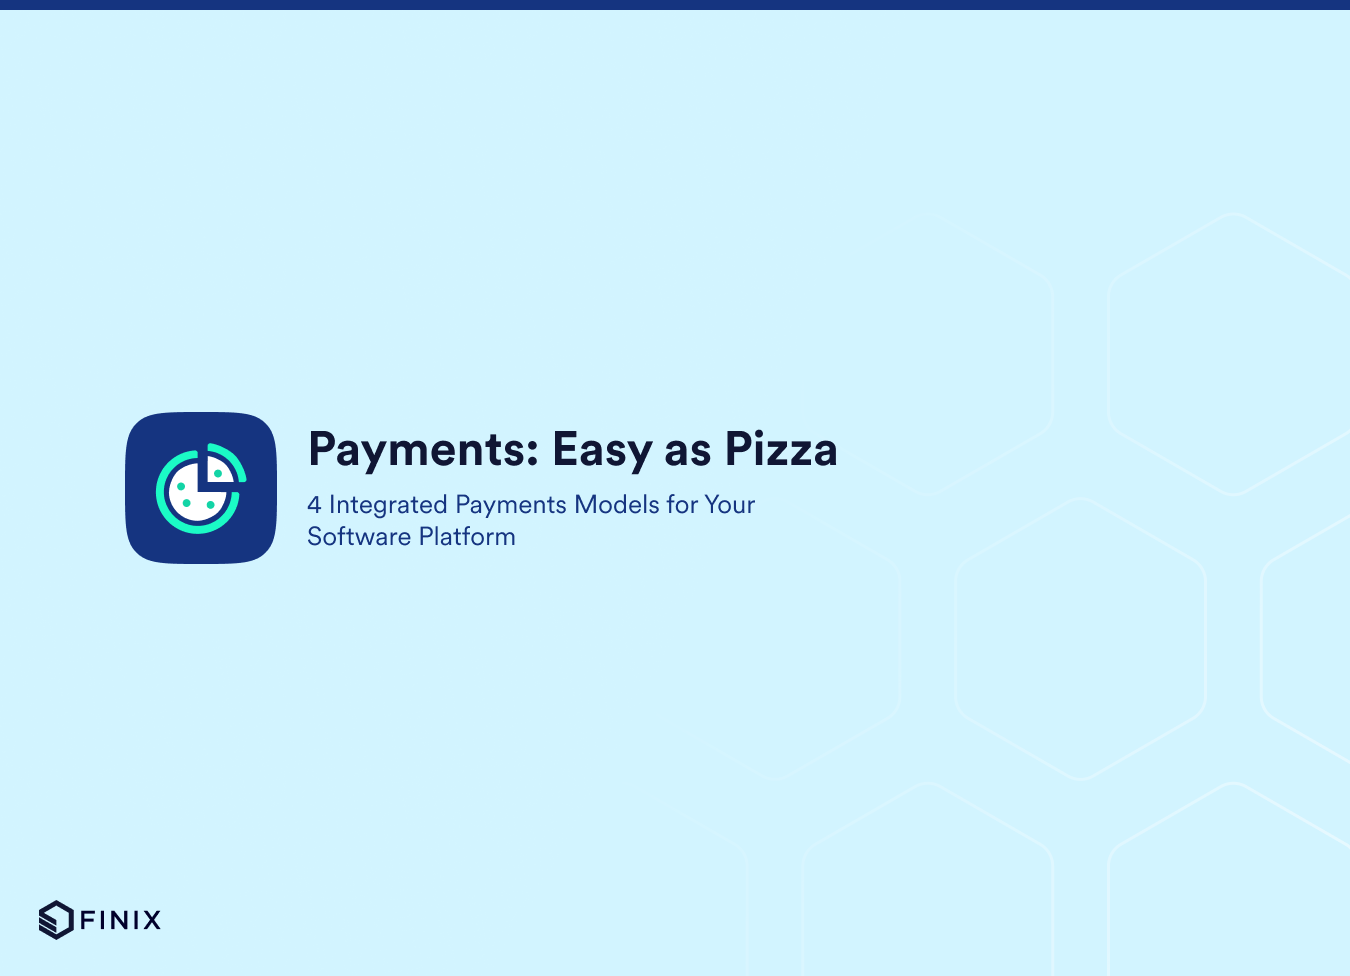 Payments: Easy as Pizza